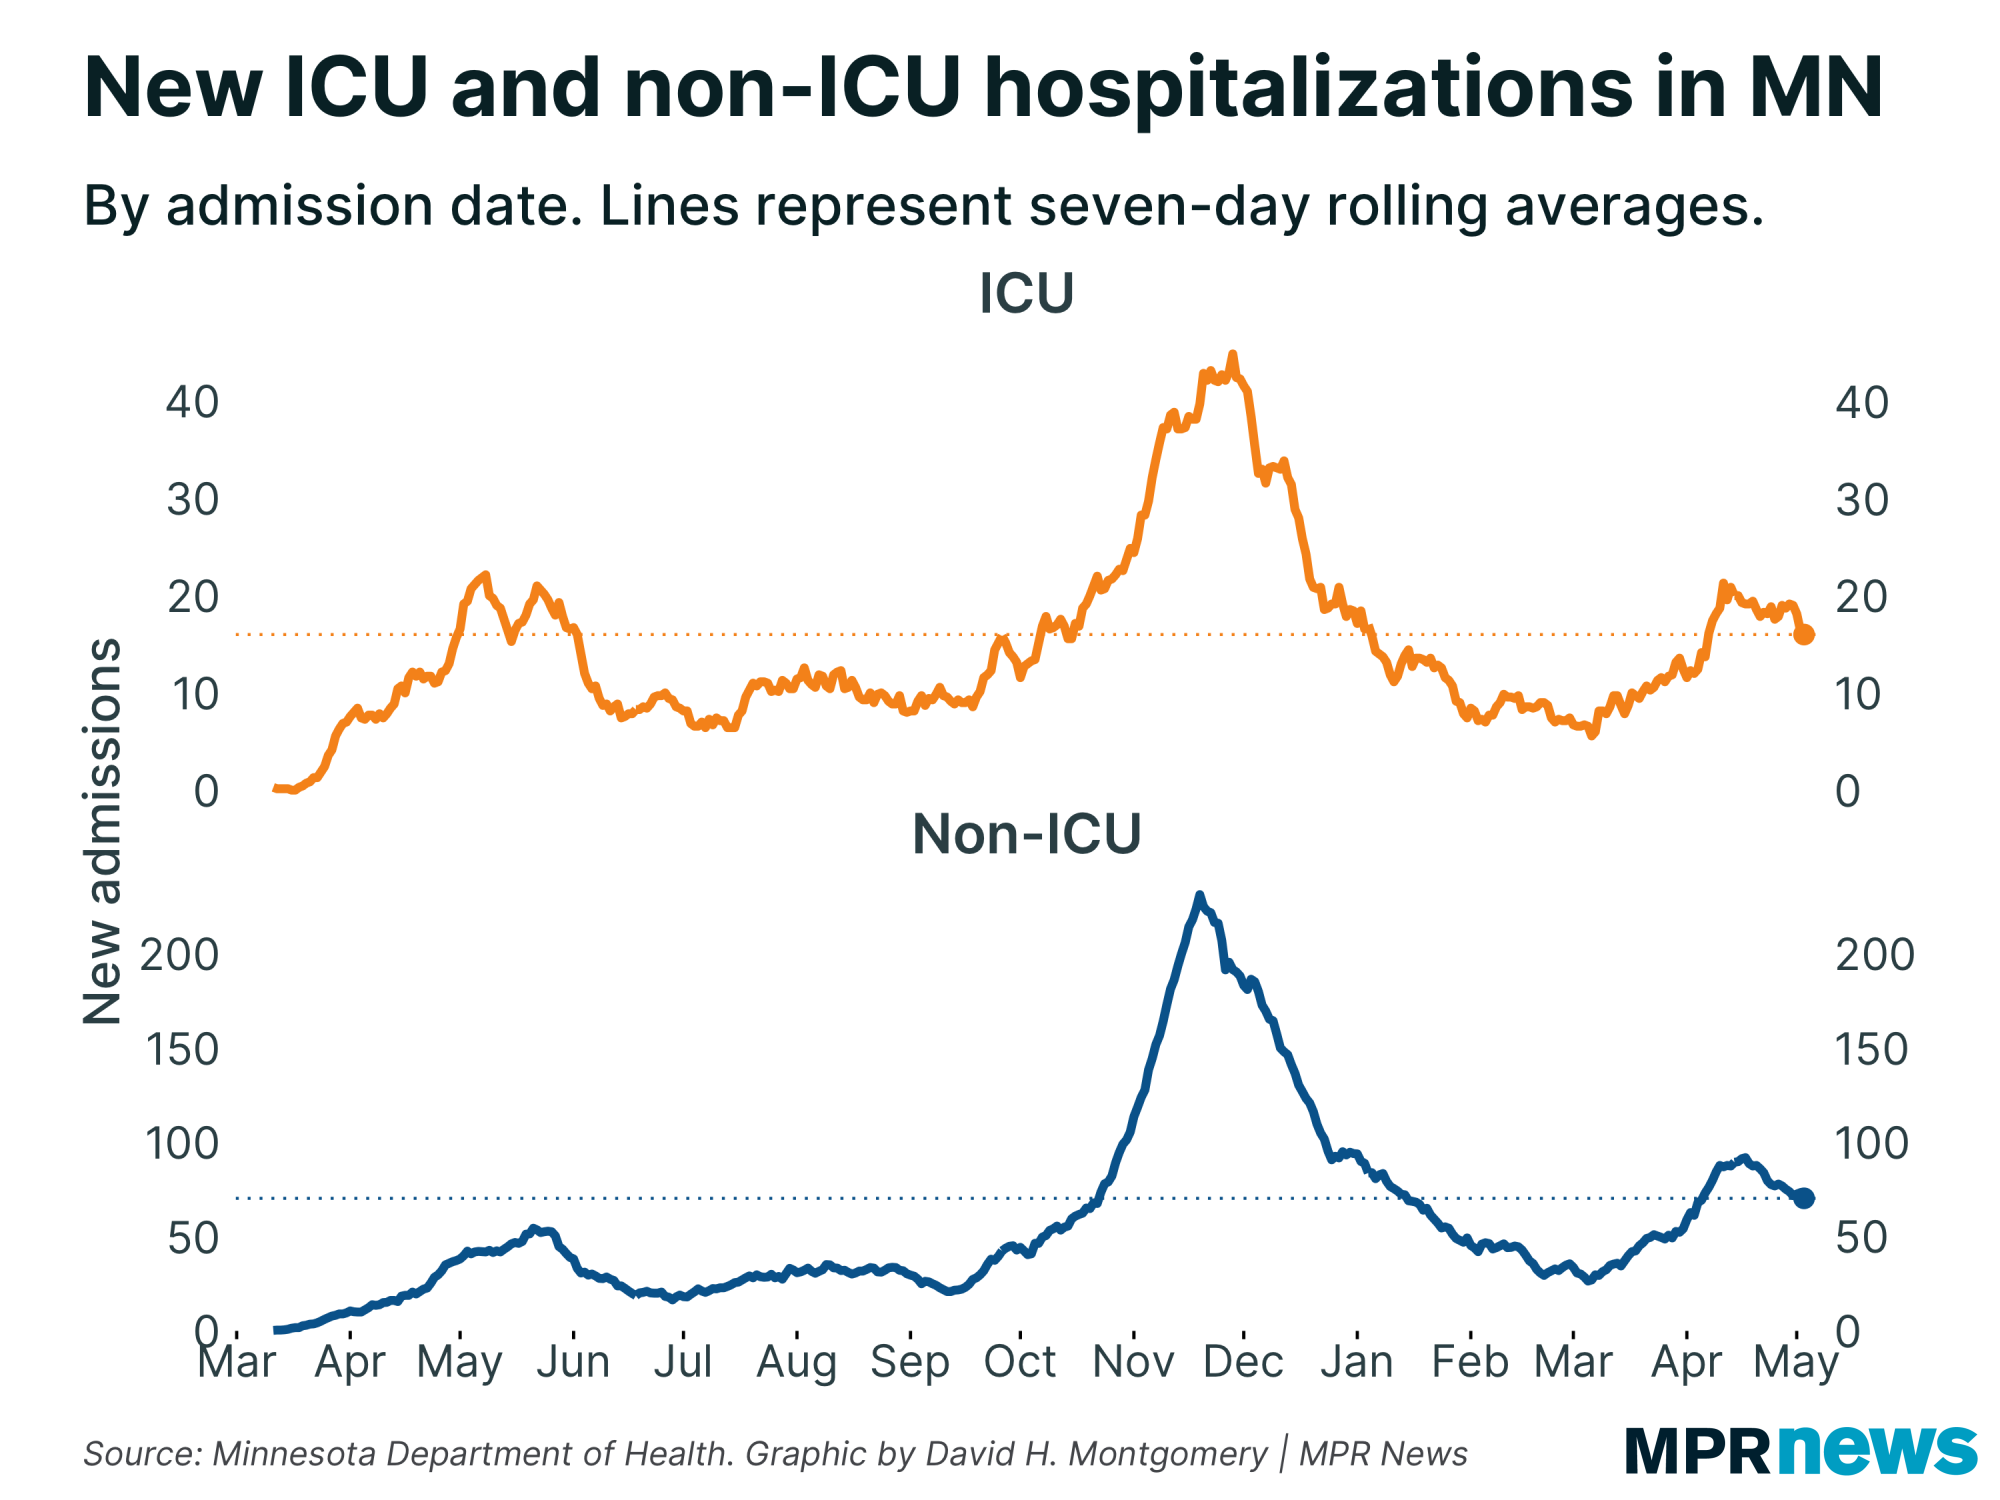 New ICU and non-ICU hospital admissions in Minnesota